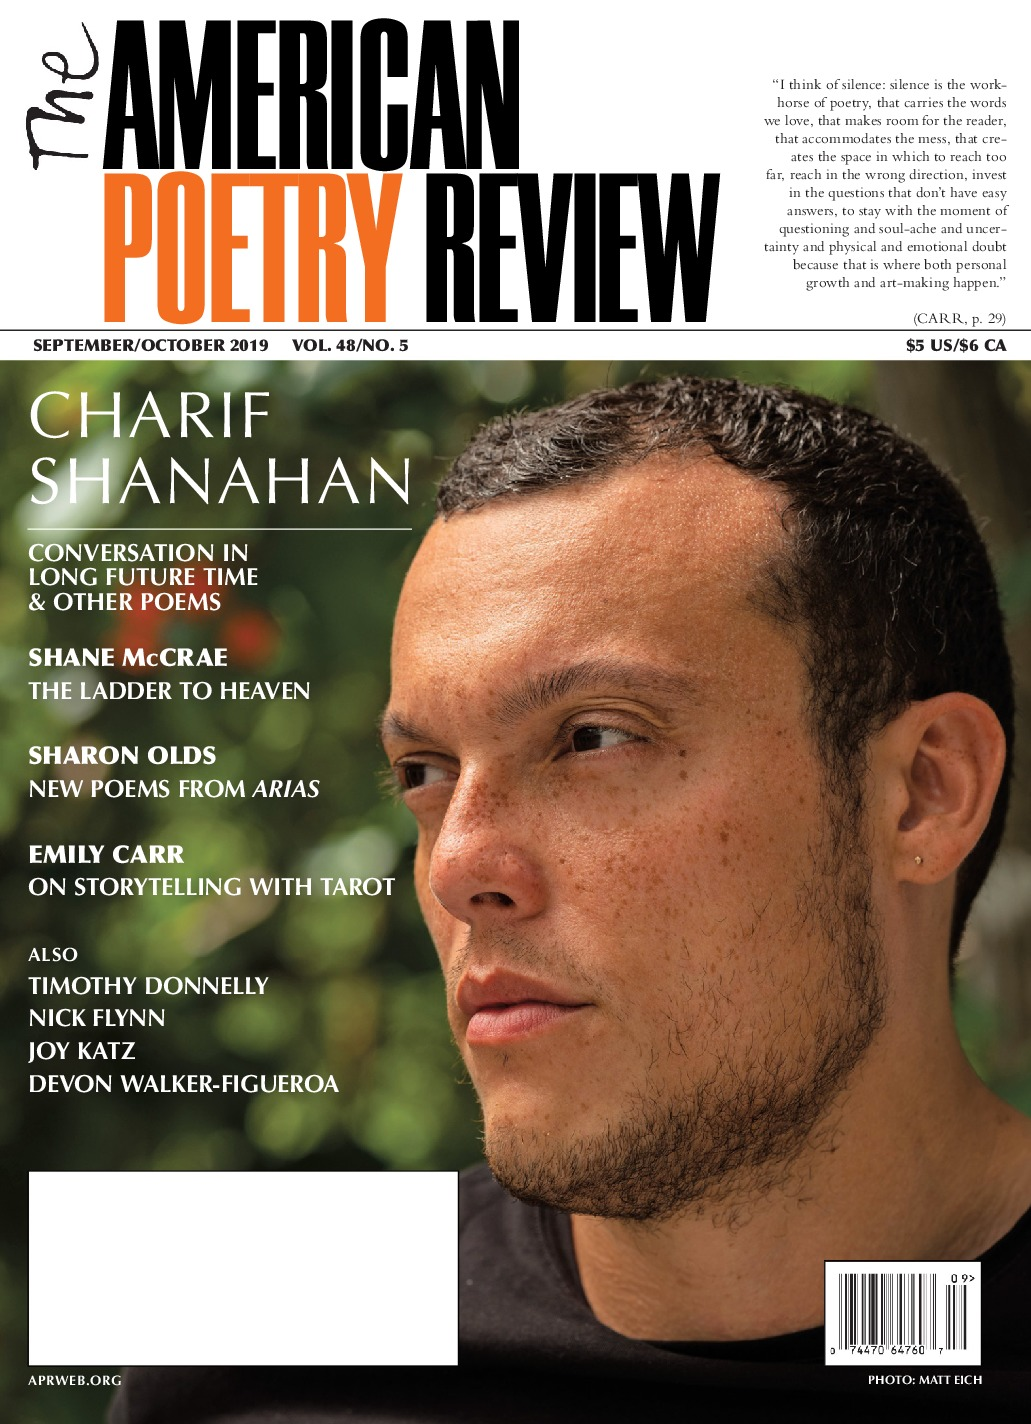 The American Poetry Review September October 2019 - Scene